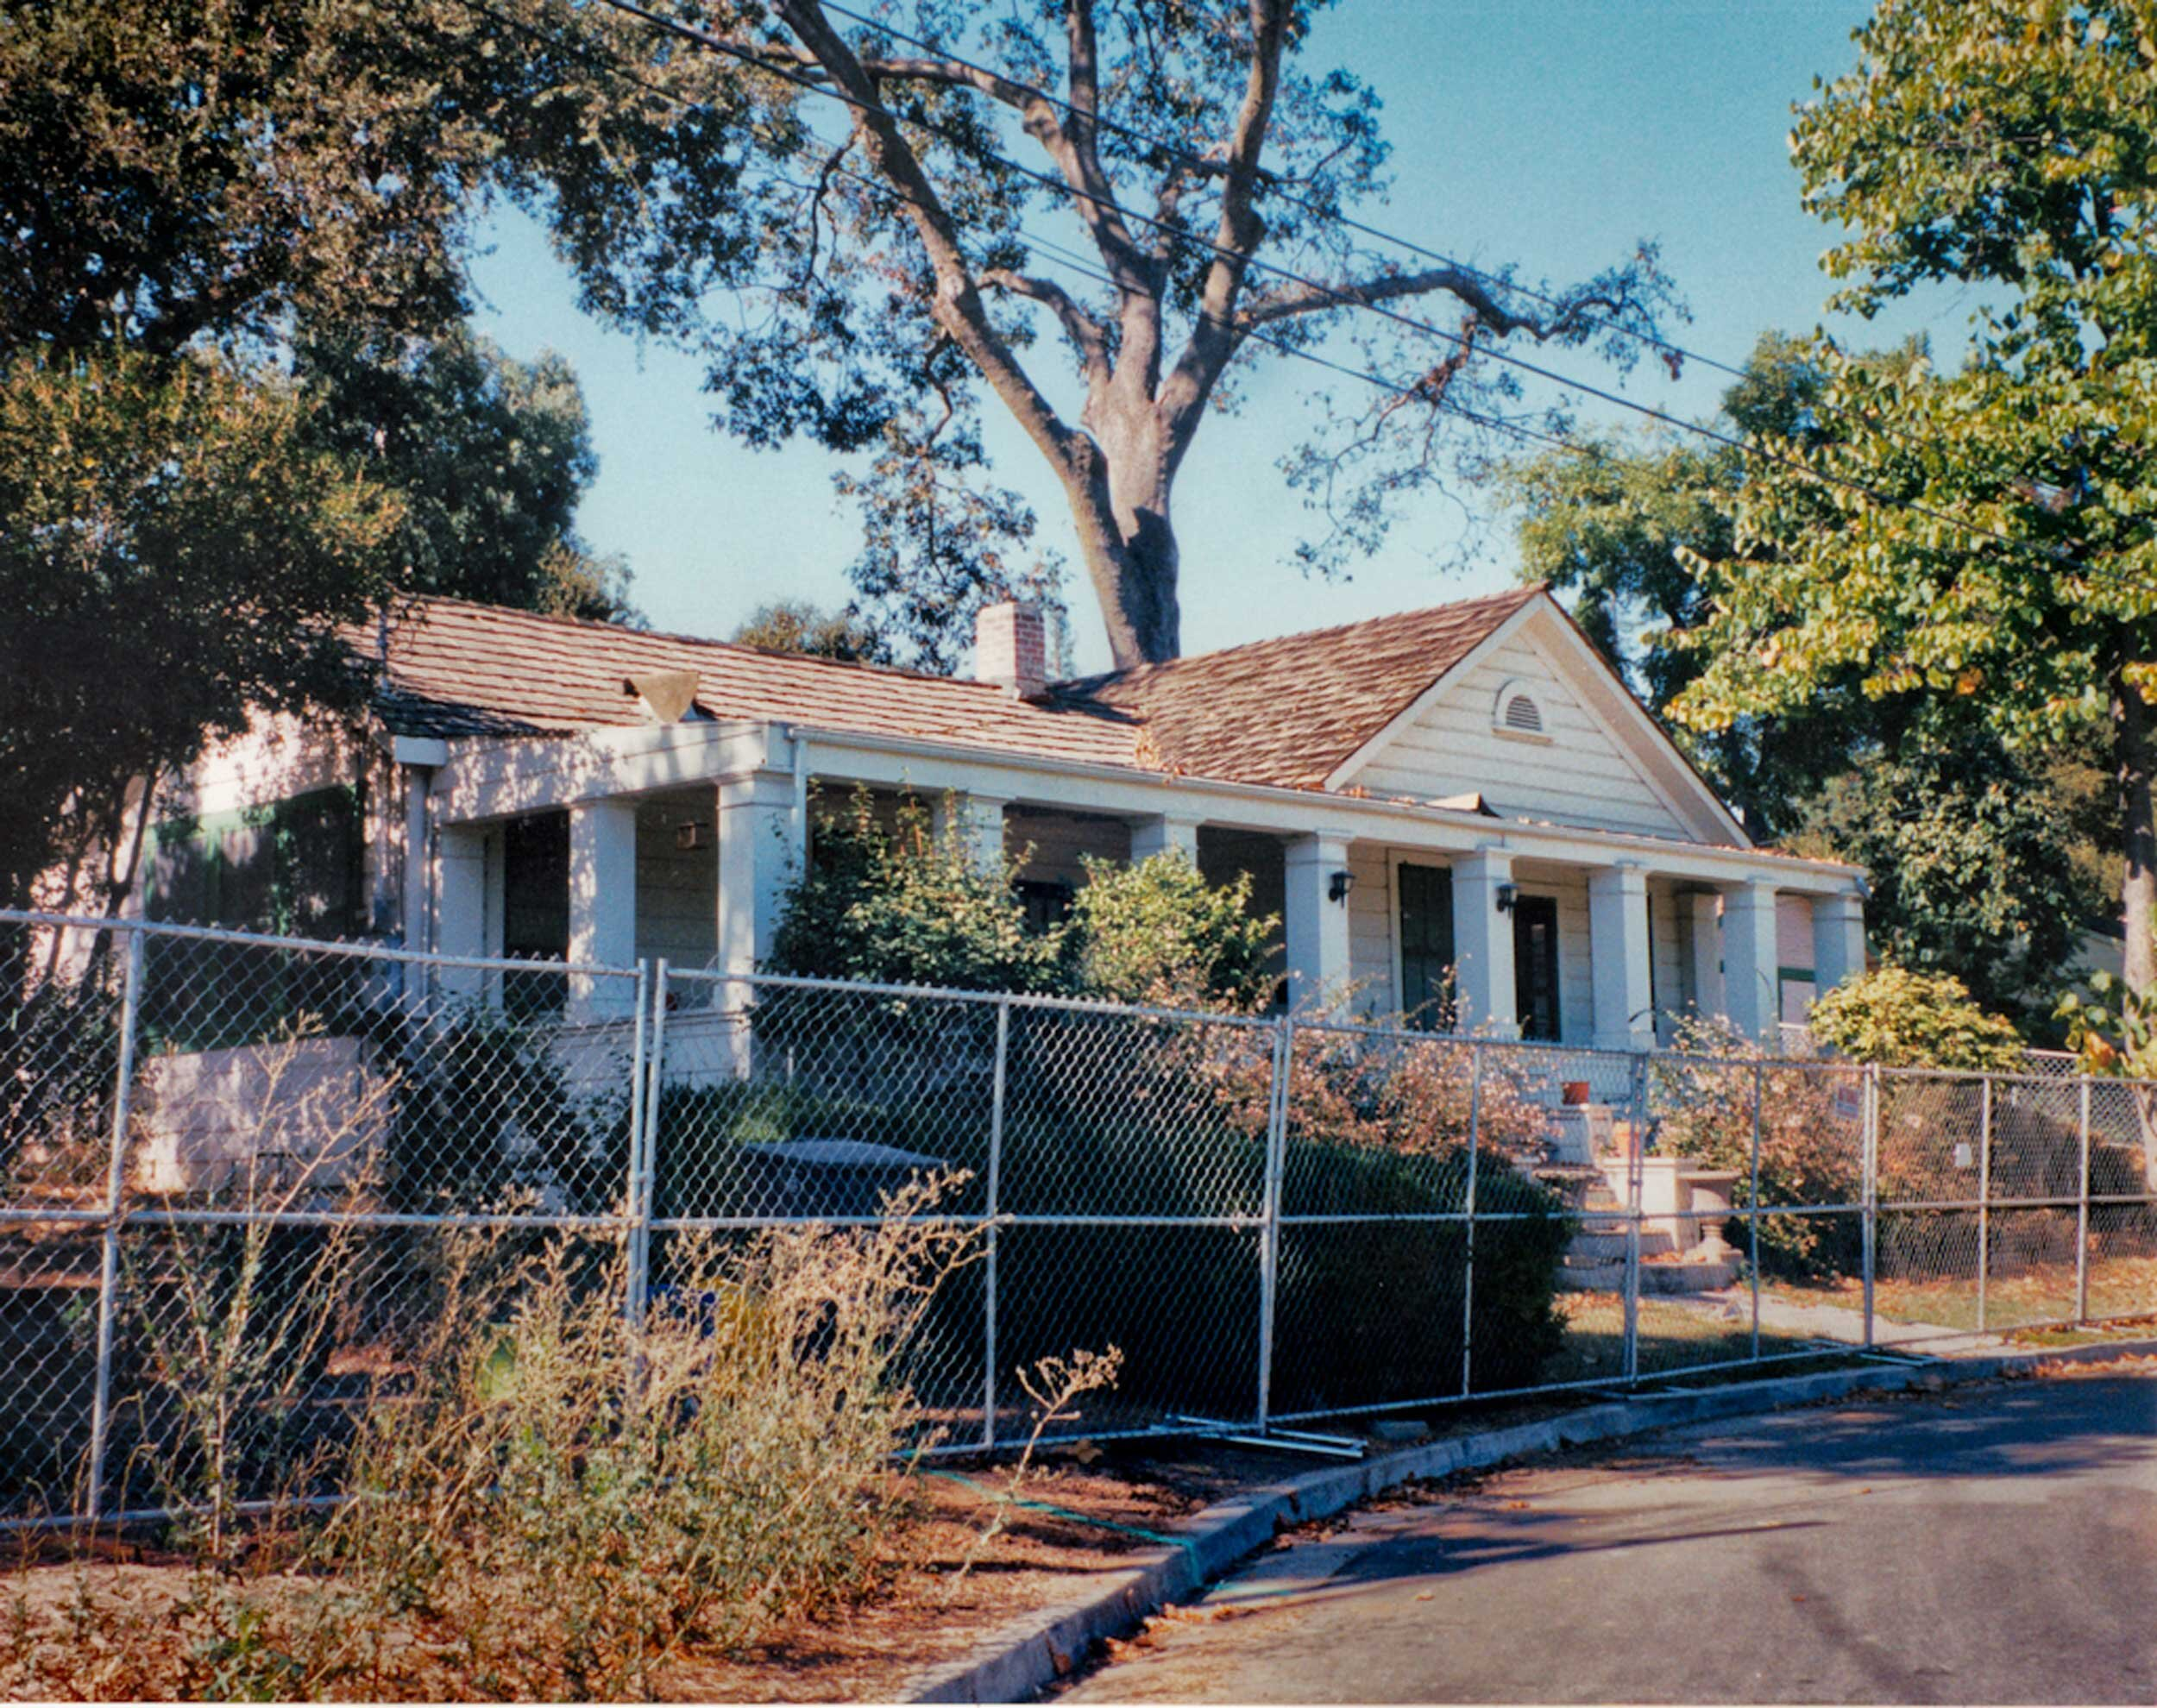 The McCarty House before renovation